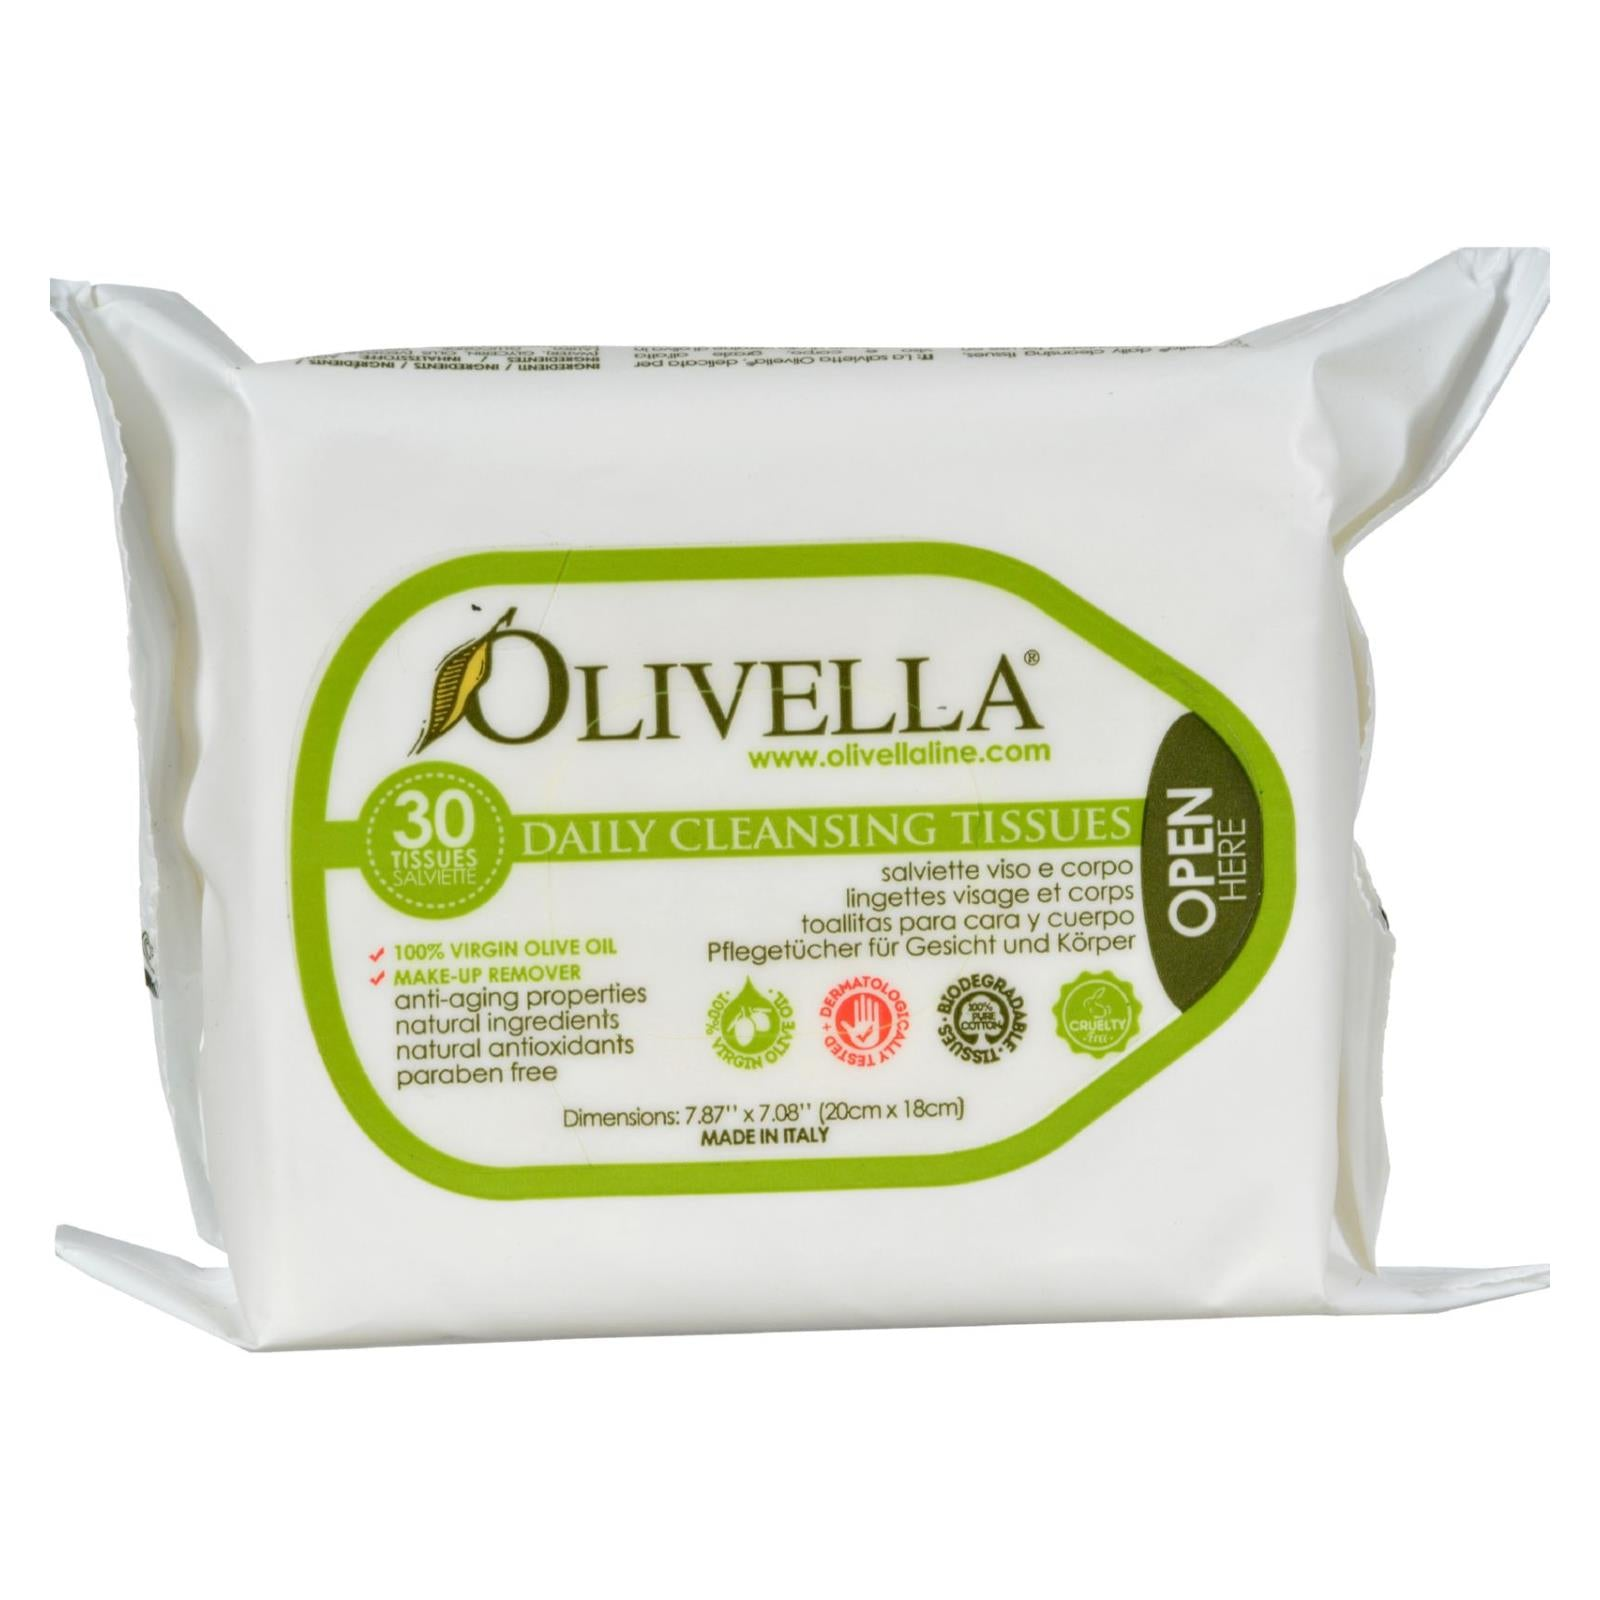 Buy Olivella Daily Facial Cleansing Tissues - 30 Tissues - Cleansers from Veroeco.com